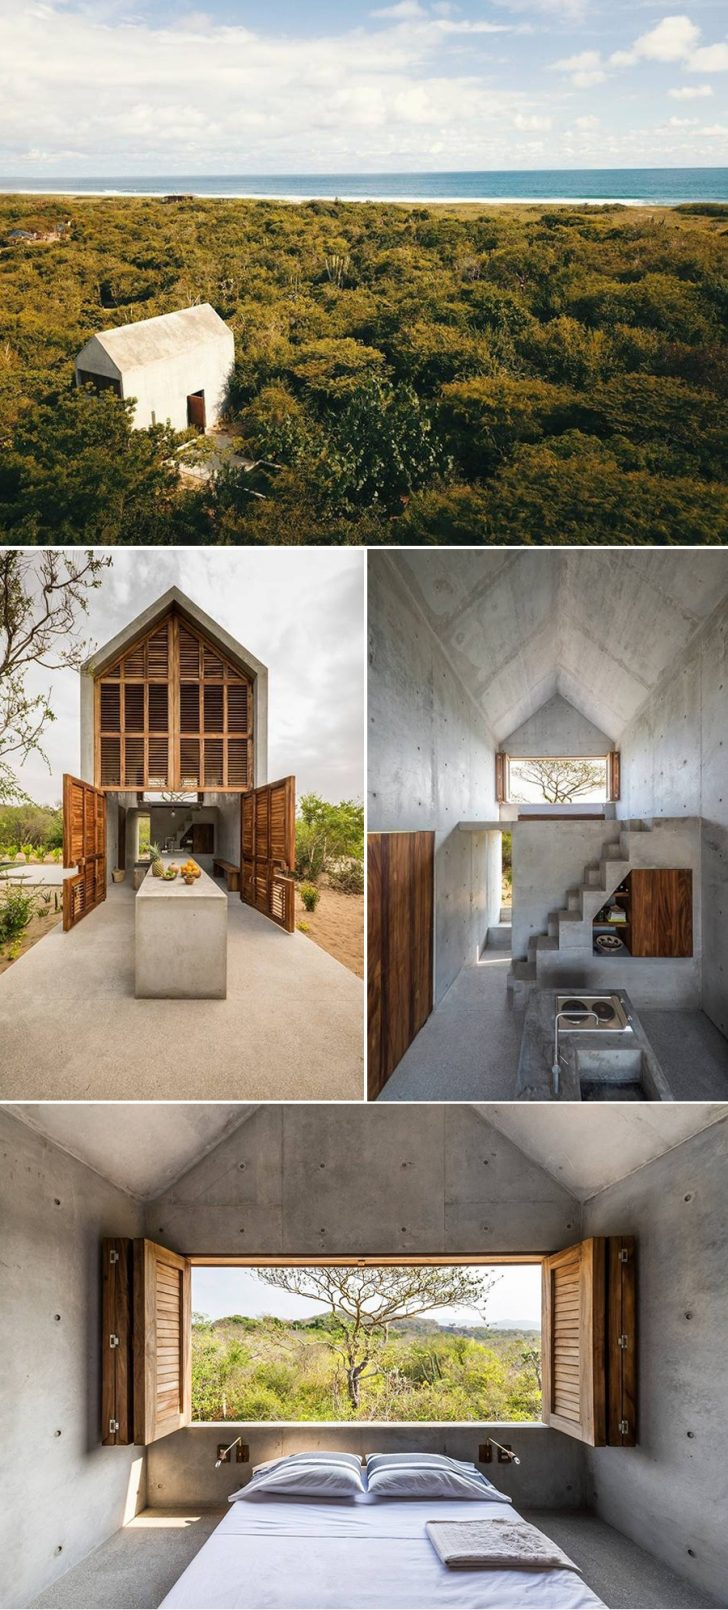 Images Of Most Beautiful Bungalows Best Architecture 2021